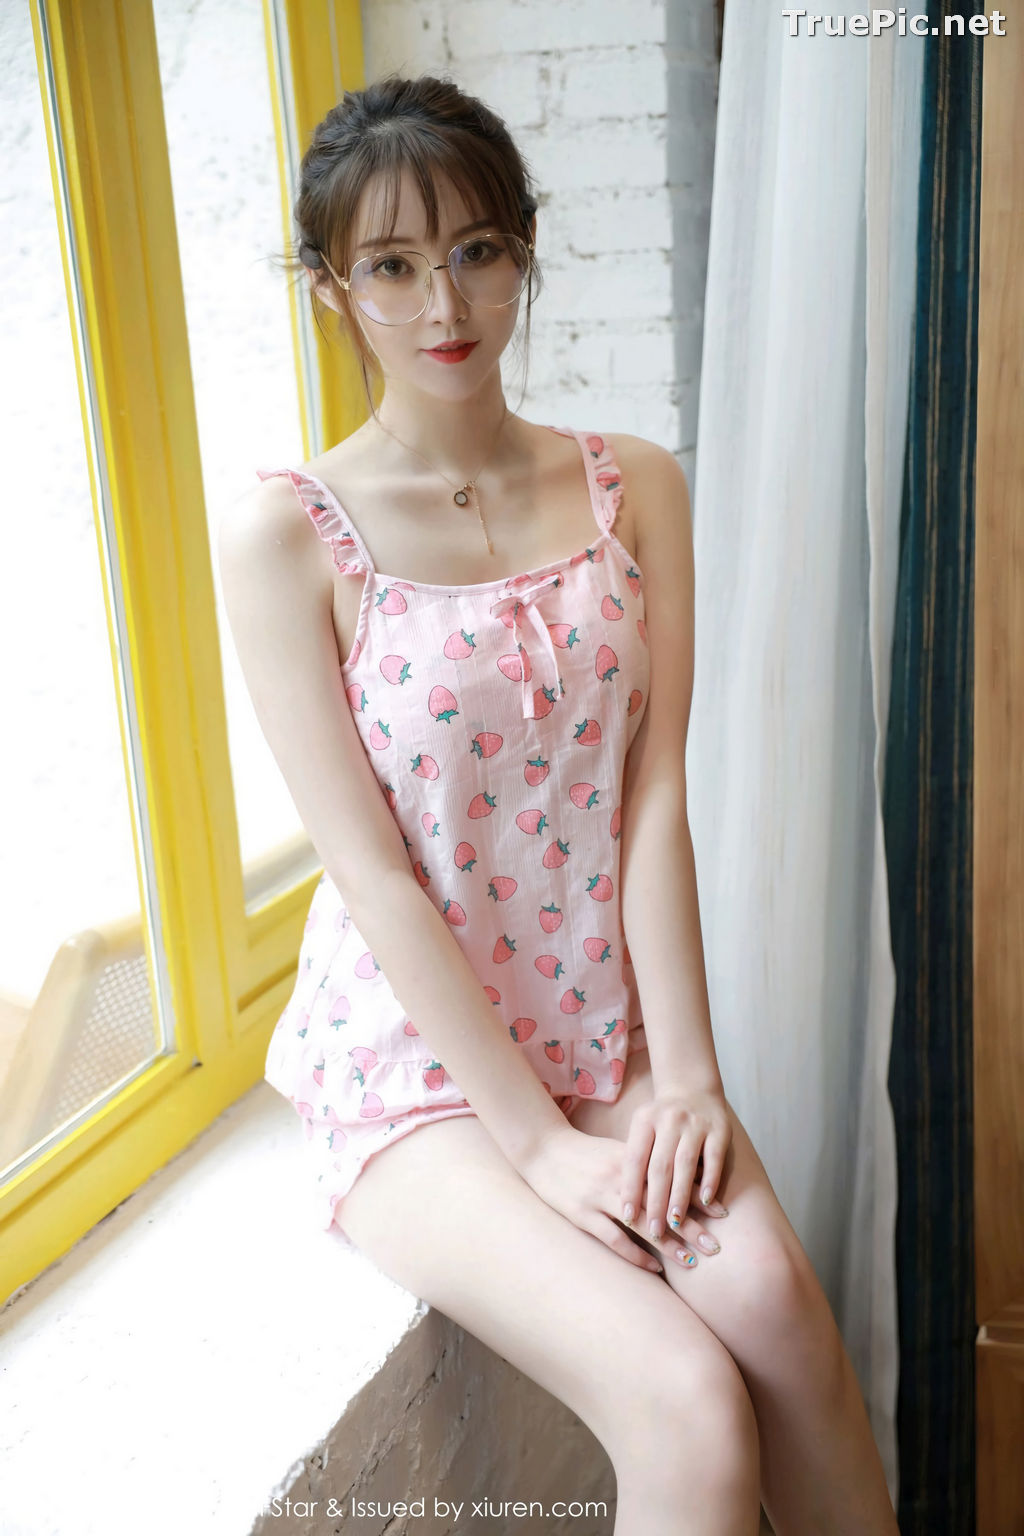 Image MFStar Vol.349 - Chinese Model Yoo优优 - Sexy and Cute Strawberry Girl - TruePic.net - Picture-5